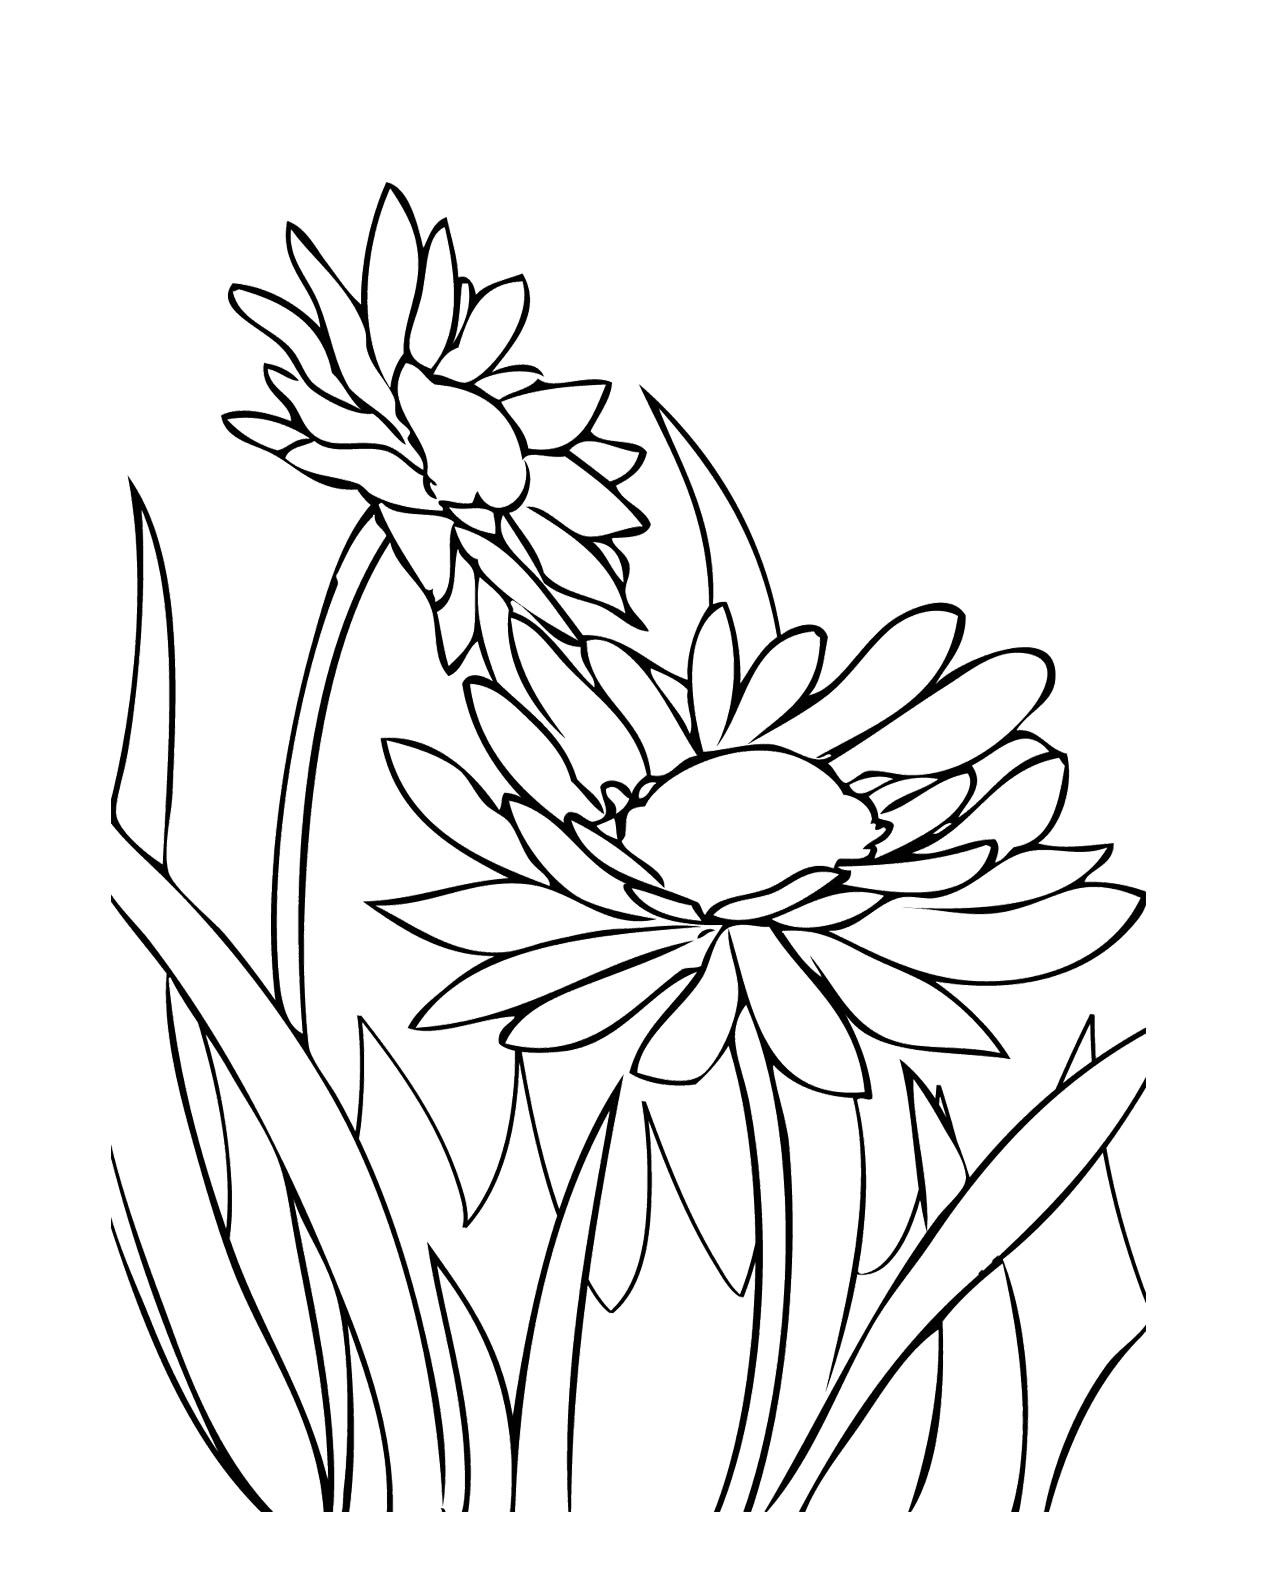 Growing Spring Flowers Coloring Pages Mosaic Patterns